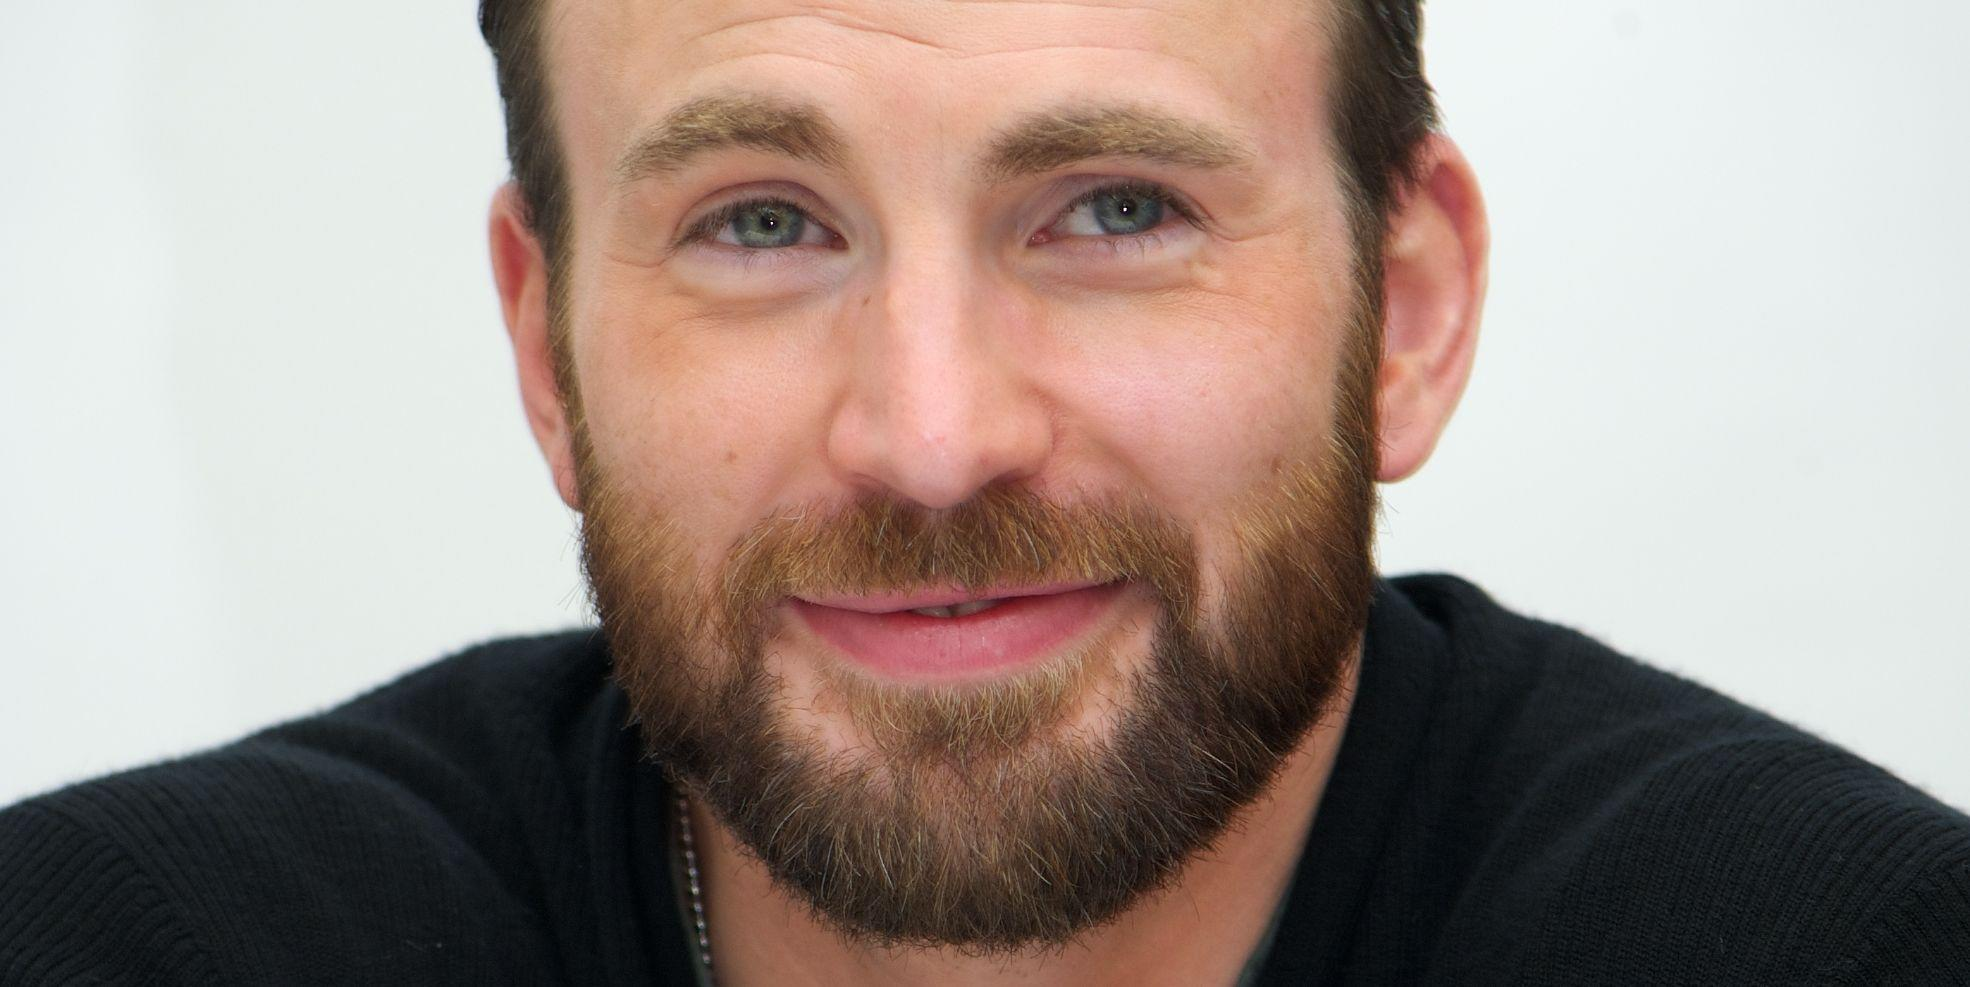 Chris Evans jokes after penis pic slip-up: Now that I